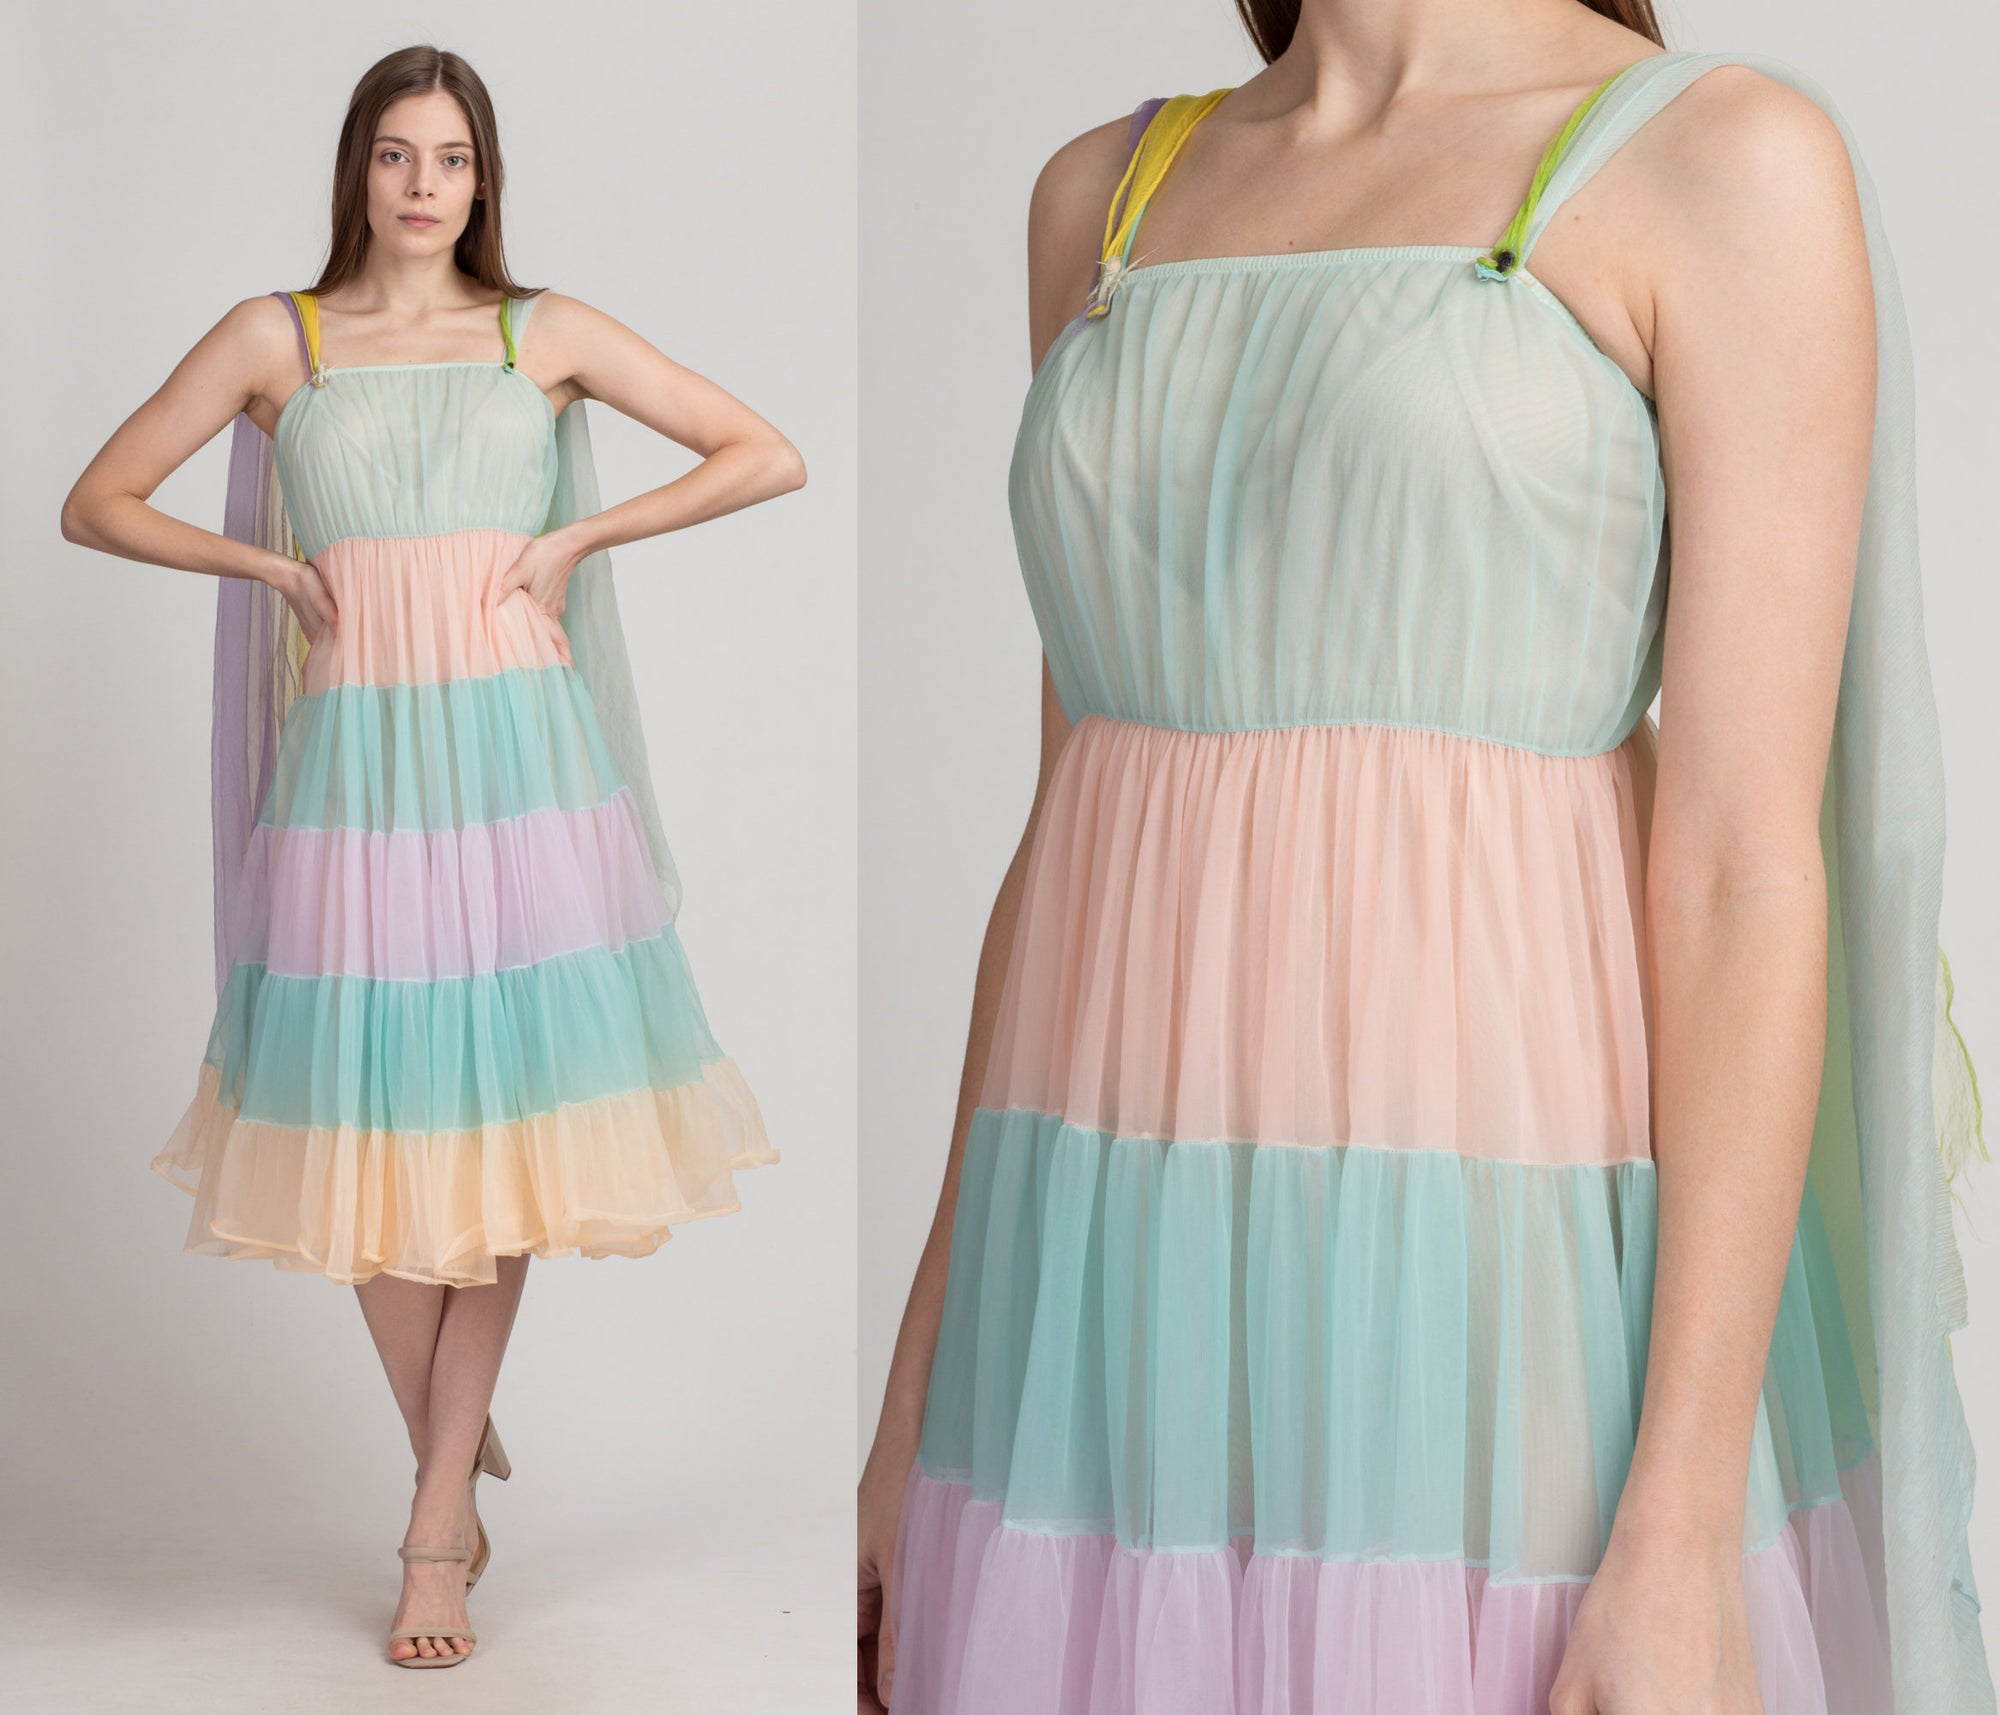 60s Pastel Color Block Babydoll Nightie - Extra Small | Vintage Sheer Capelet Peignoir Midi Slip Dress